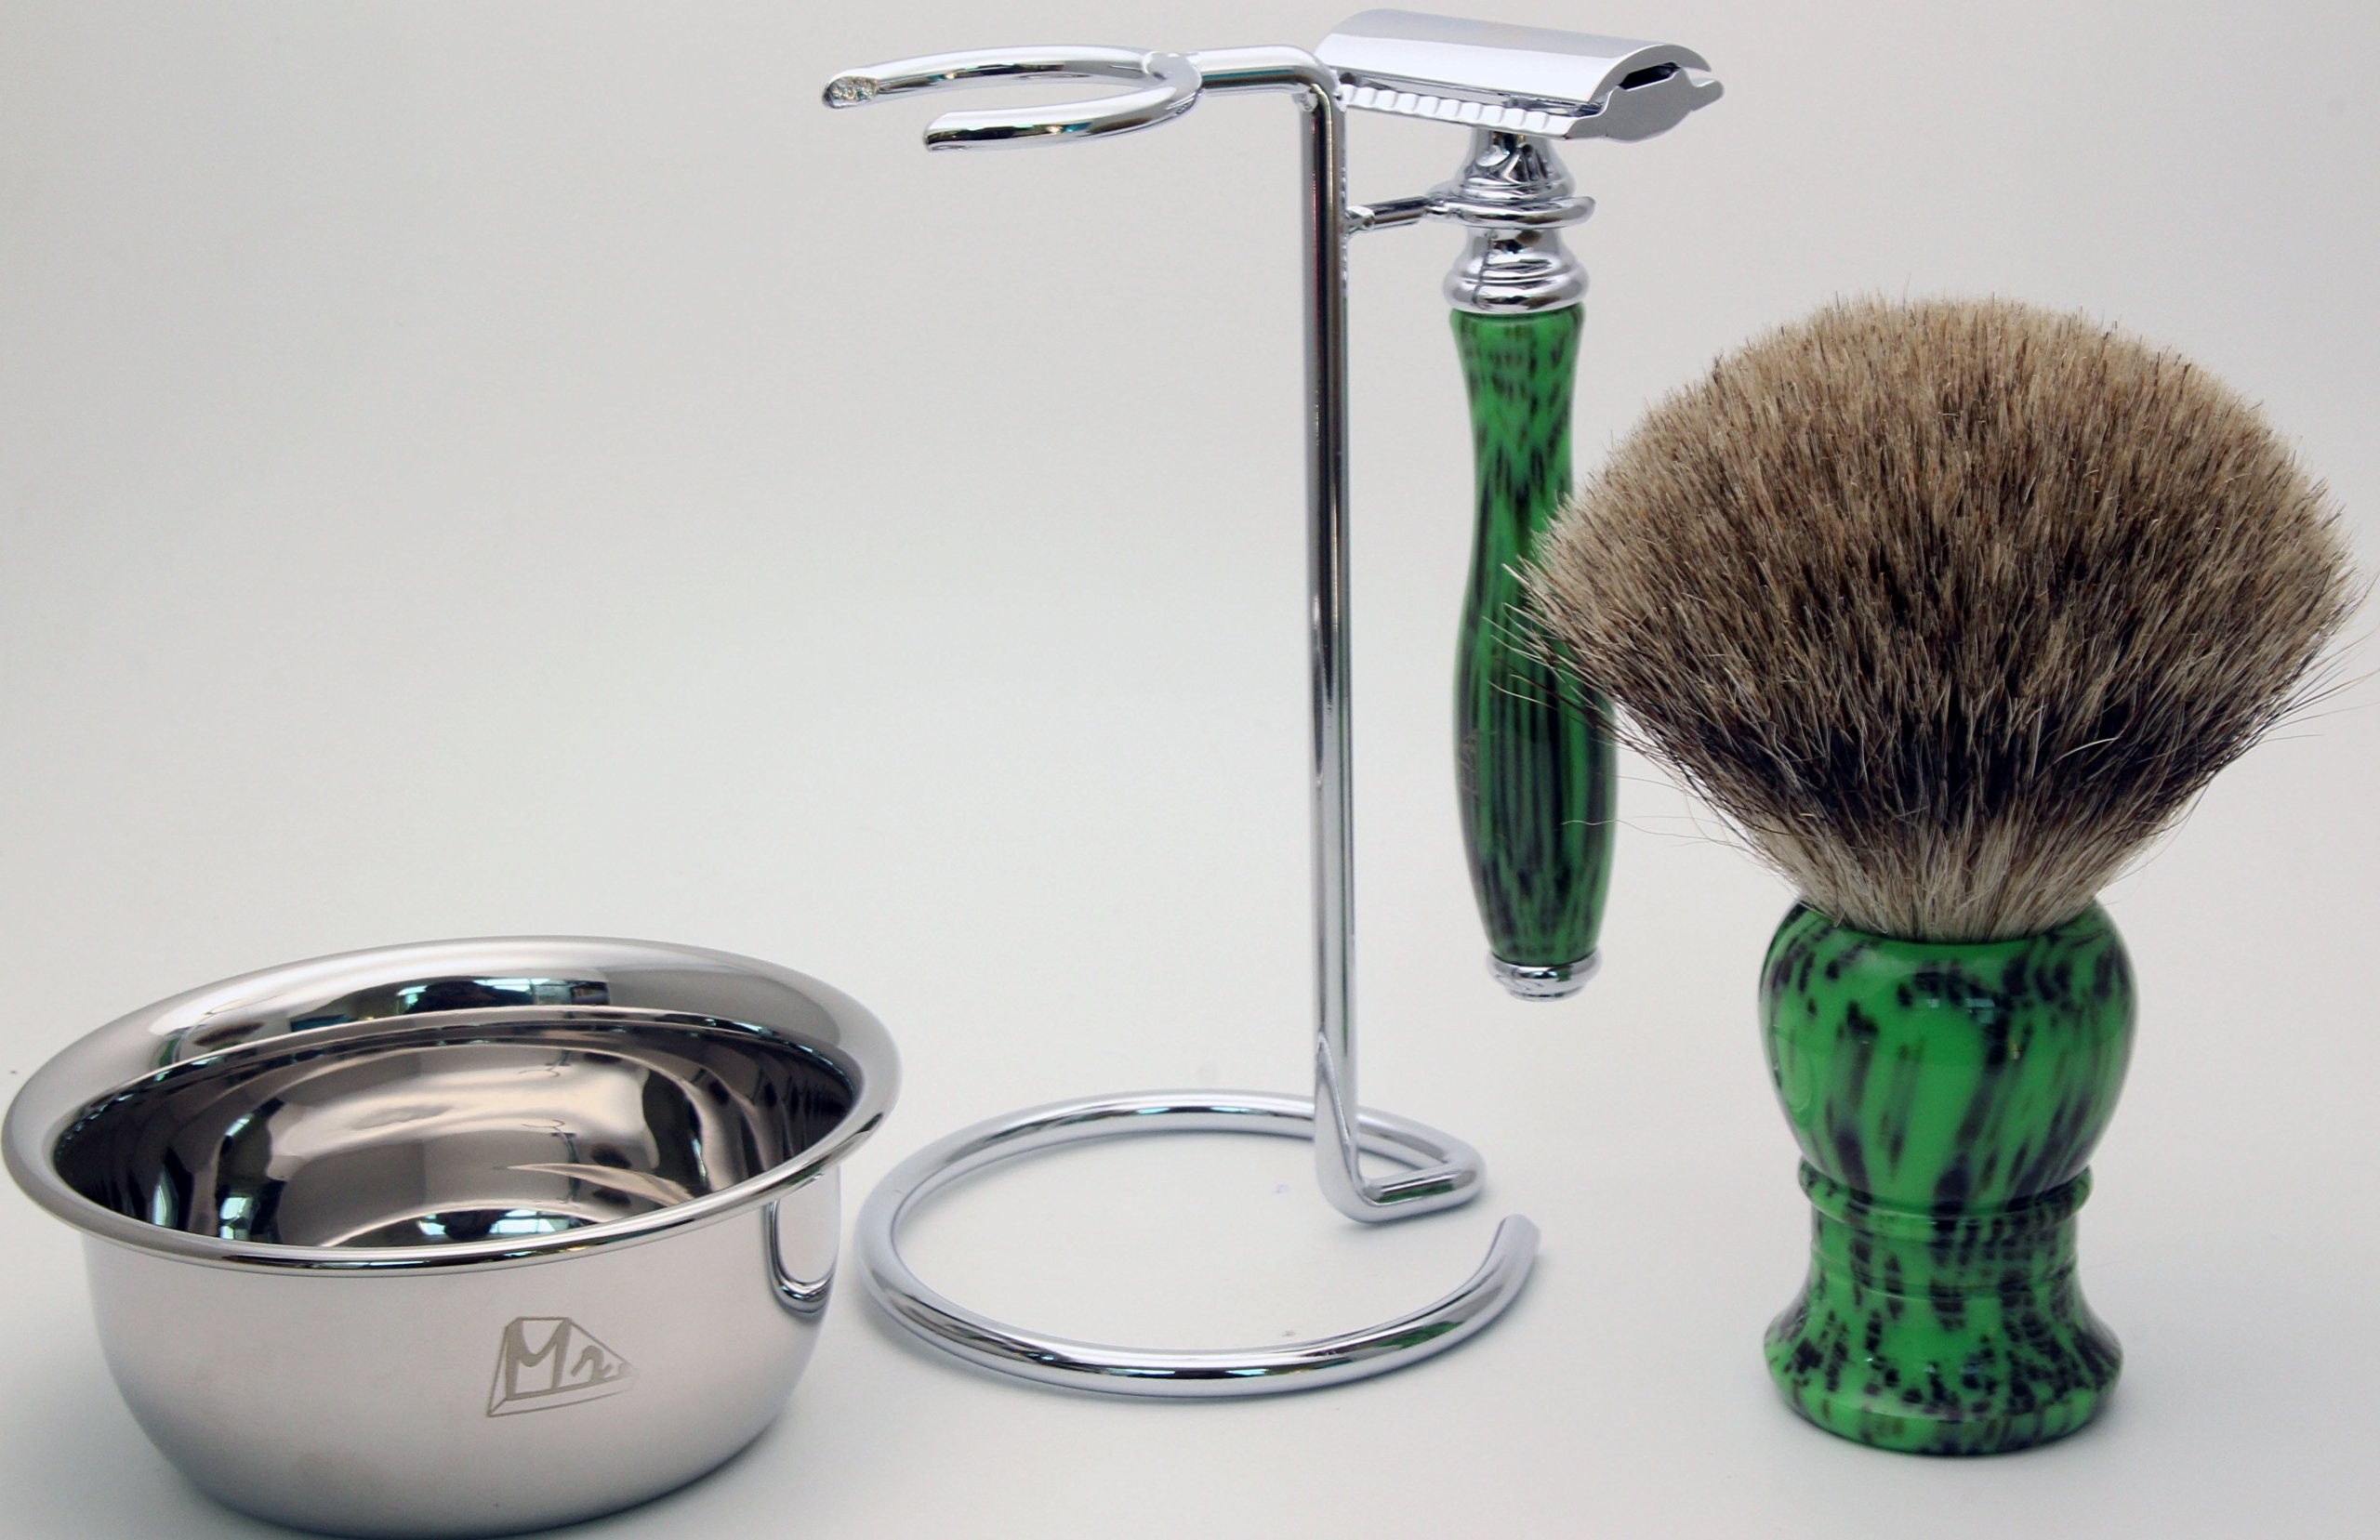 Mr 4 IN 1 Shaving Set with Safety Razor,Bowl,Stand,Hand Crafted 100% Pure Badger Shaving brush.Great Christmas Gift Idea for Your man, father,husband,boyfriend,brother,boss (green)